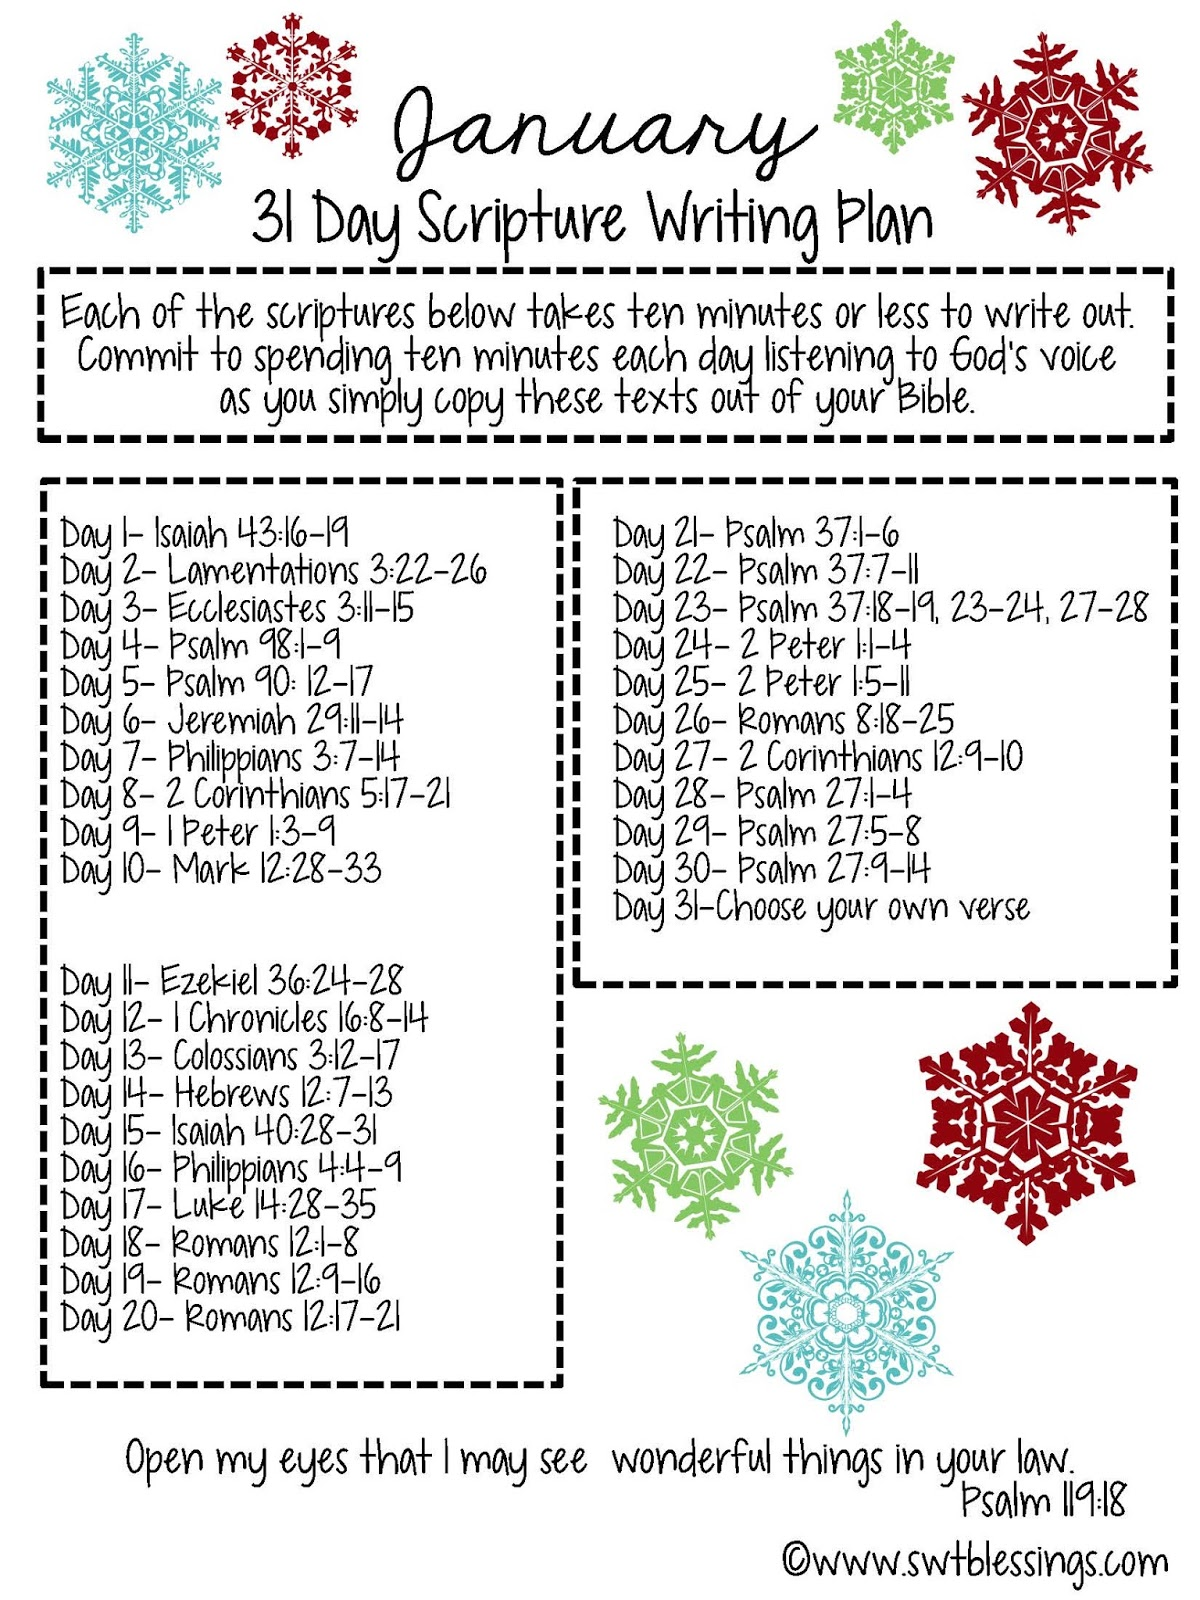 Sweet Blessings January Scripture Writing Plan 2016